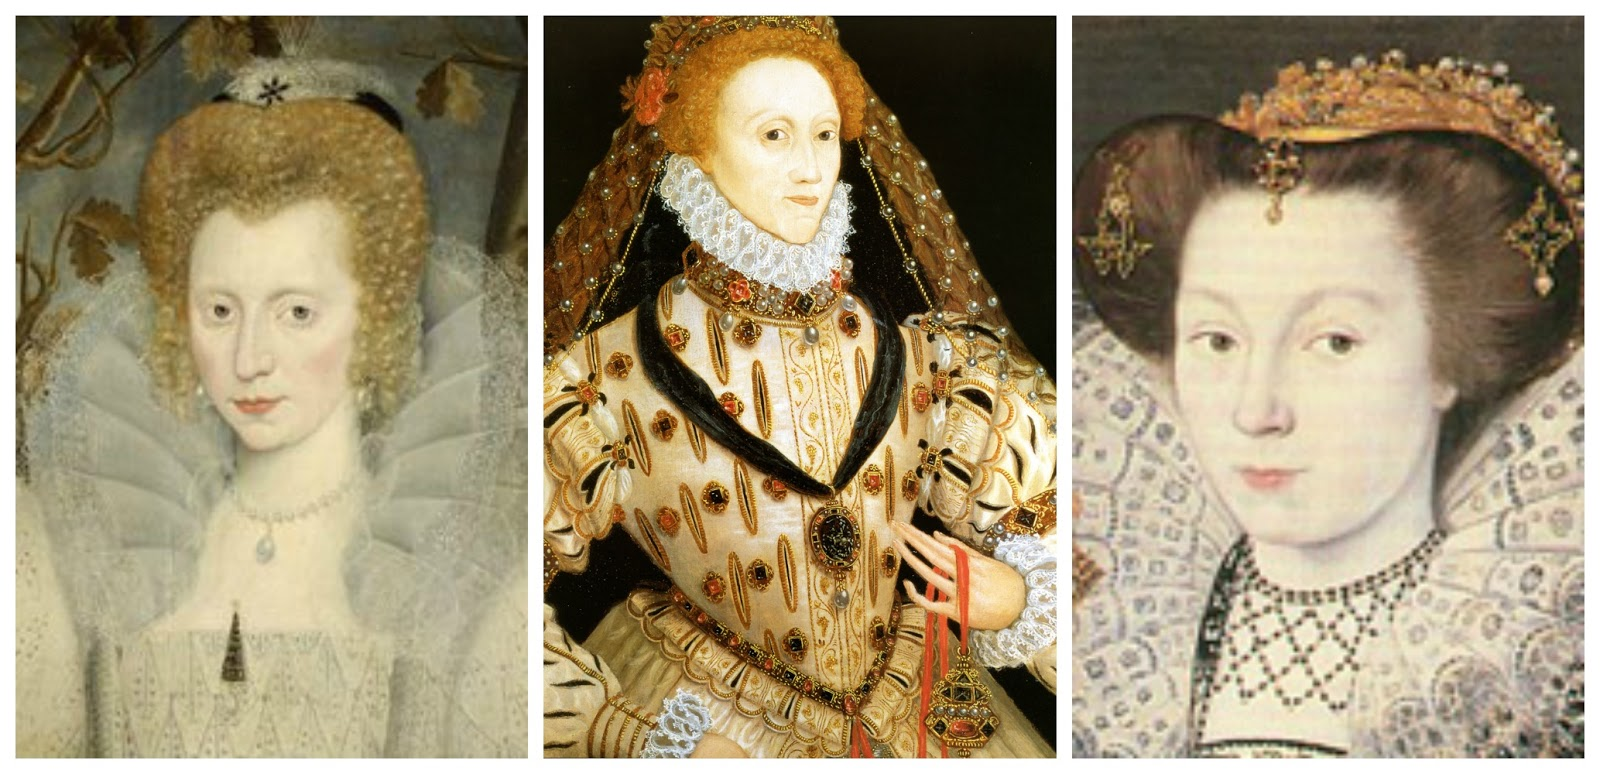 the use of padding in the elizabethan era | redheads and royalty